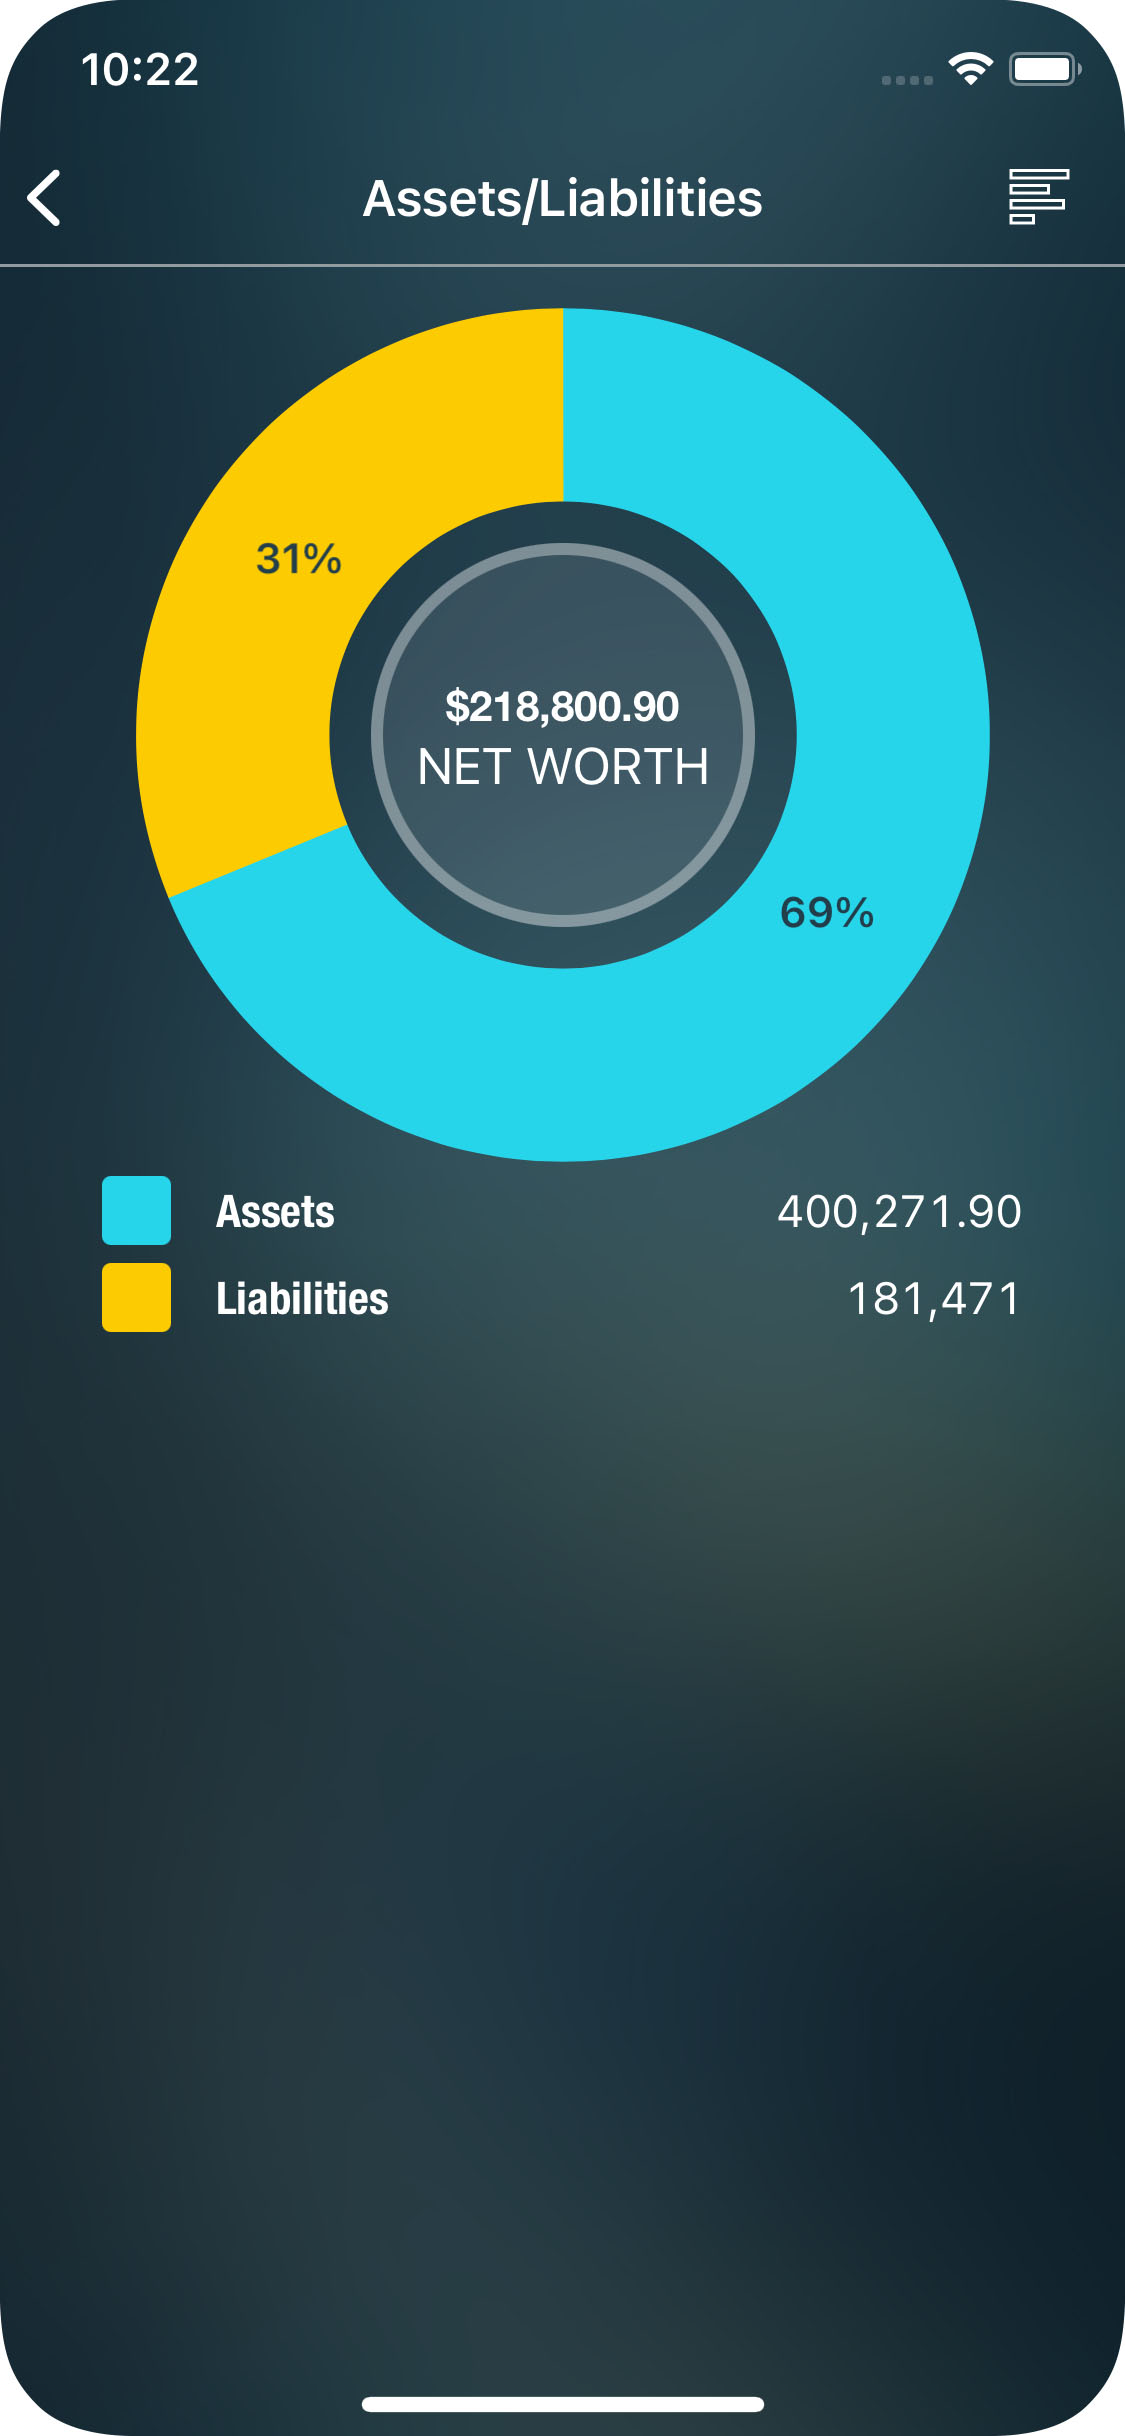 Money Pro - Assets/Liabilities report - iPhone